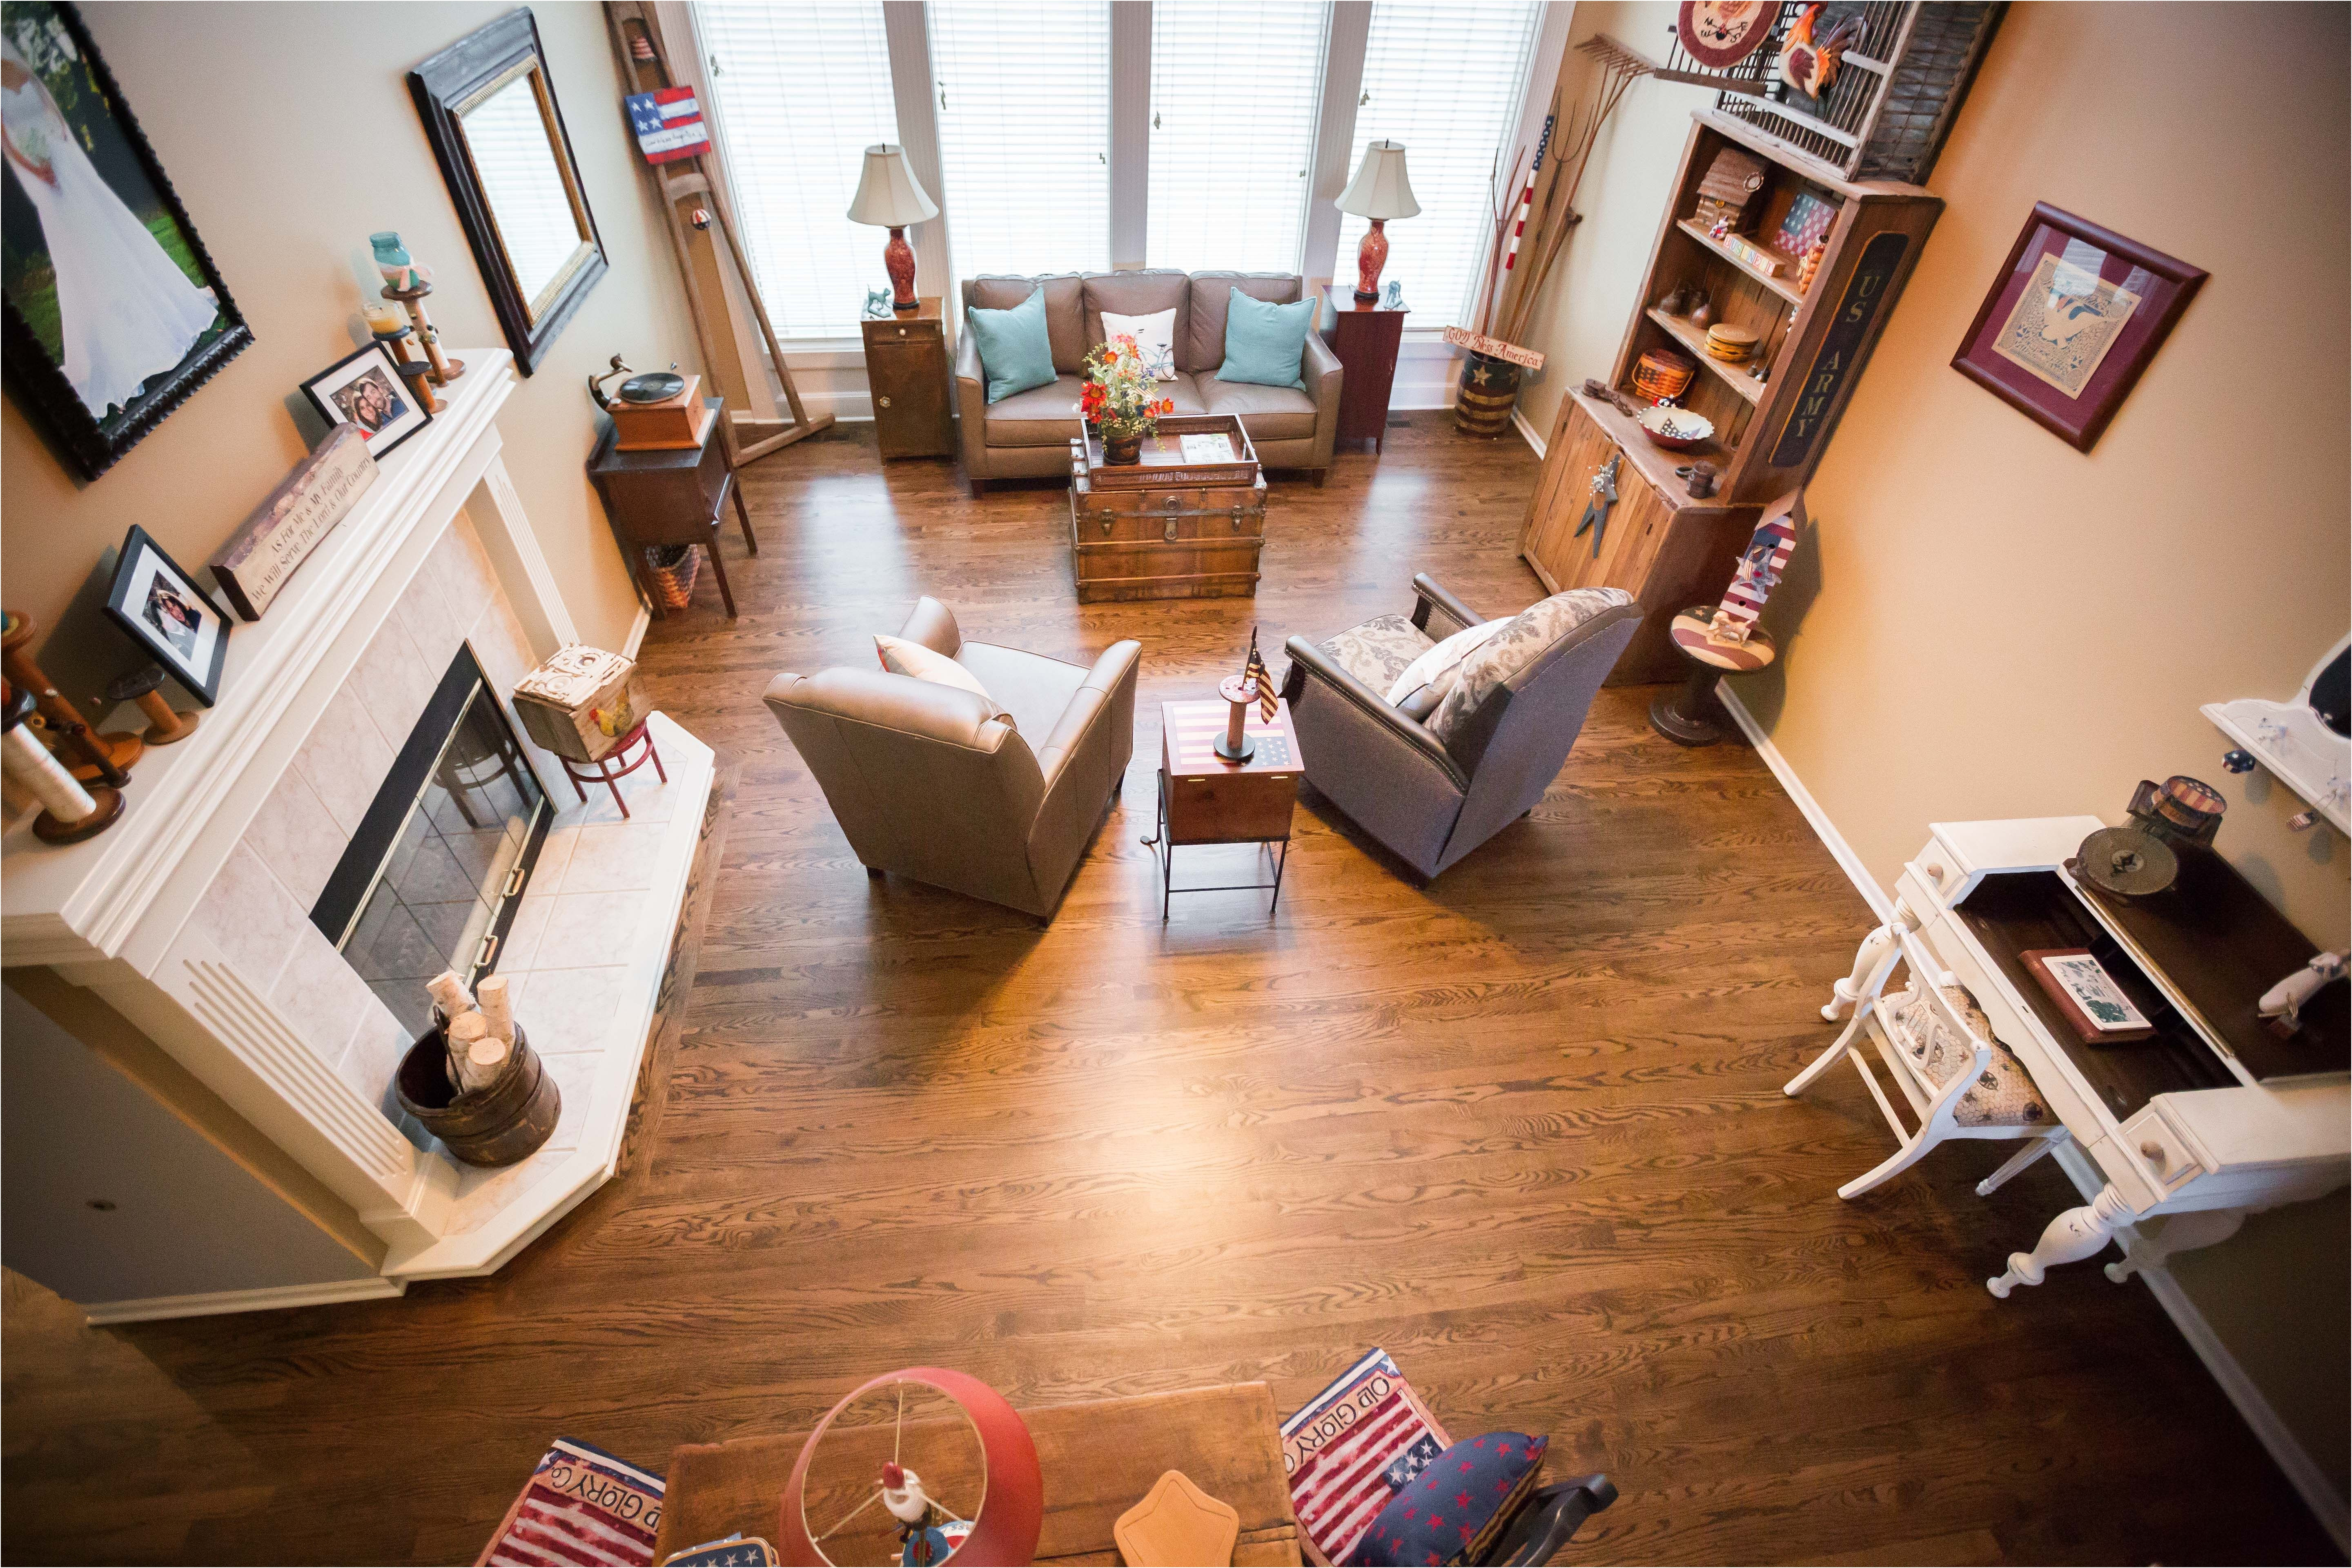 laminate or hardwood flooring which is better of wood flooring ideas for living room awesome hardwood flooring ideas intended for wood flooring ideas for living room elegant wood flooring ideas for living room awesome 33 awesome